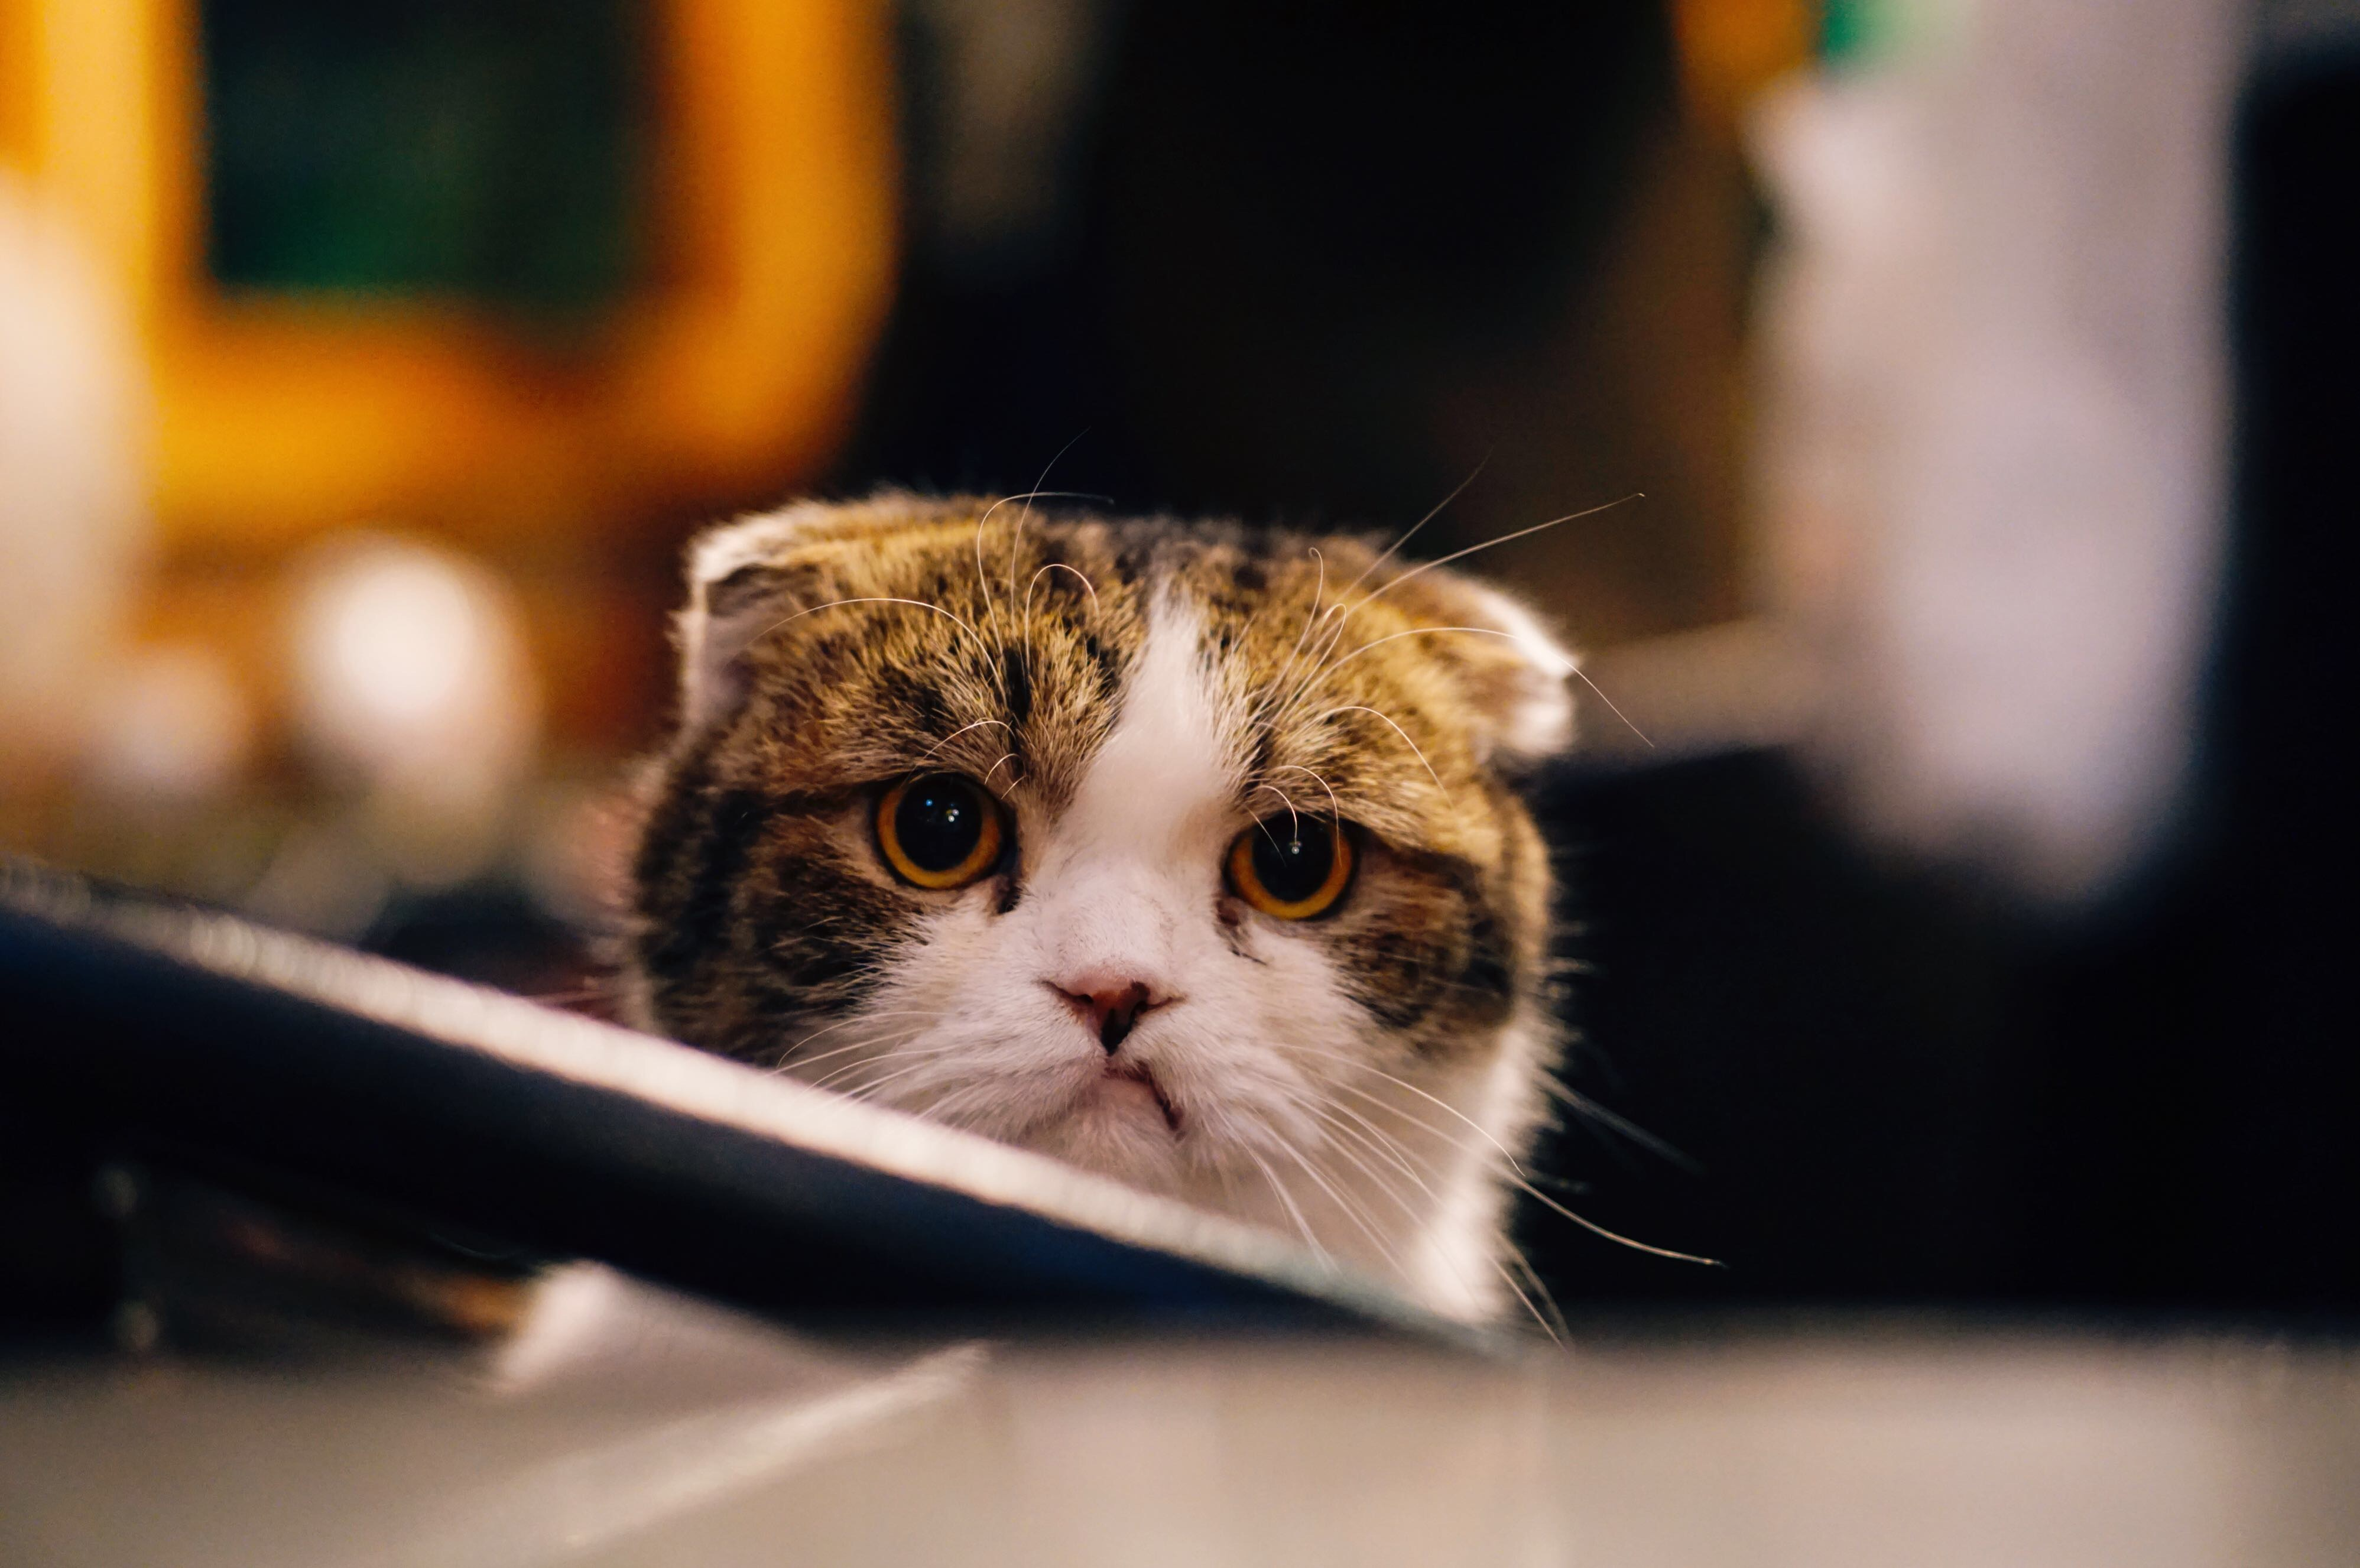 content marketing swindle angry cat